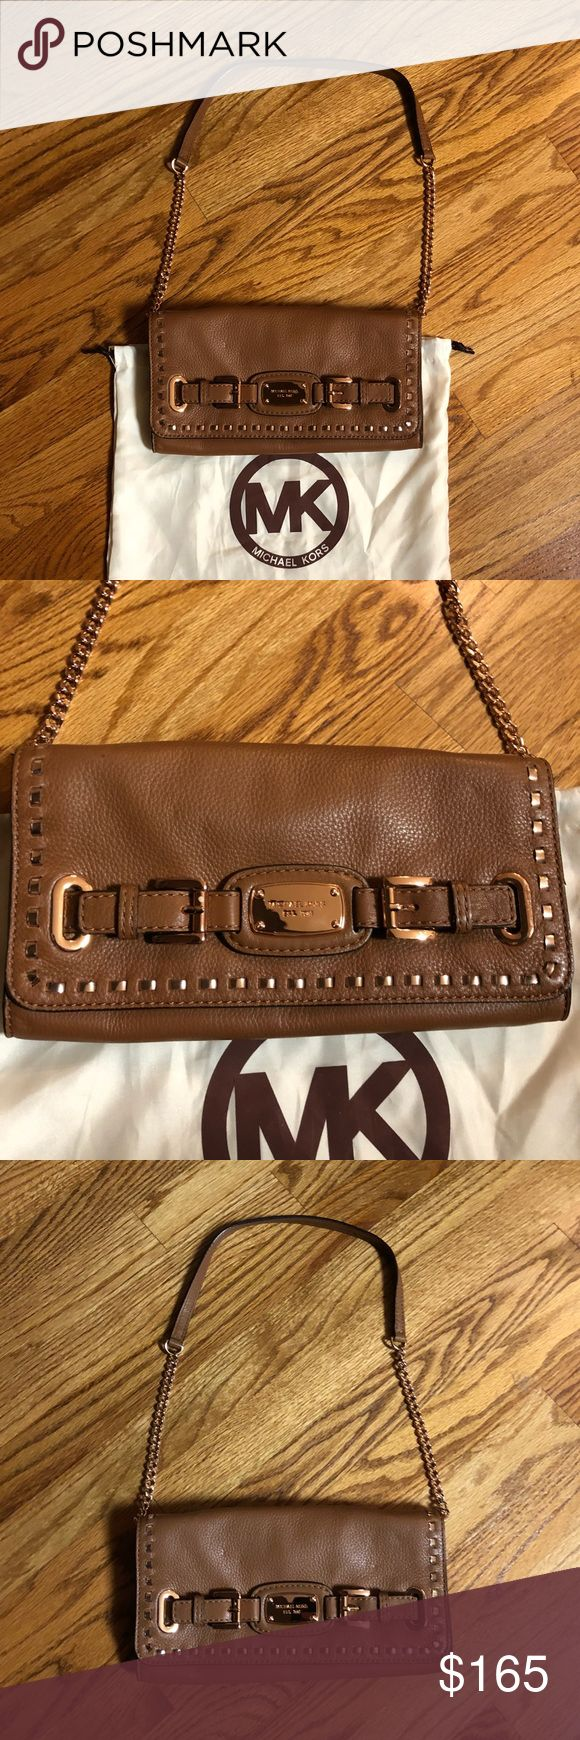 🔥sale🔥Michael Kors Hamilton leather /chain Michael kors chestnut pebbled  leather rose gold chain studded detail in rose gold very gently used super clean no flaws great shoulder bag when you don't wanna carry a big purse inside has card slots for ID ETC . Inner zip pocket large enough to carry all essentials . Included dust bag . This was bought at Michael kors in Chicago not a discount store 11x5x2 Michael Kors Bags Shoulder Bags